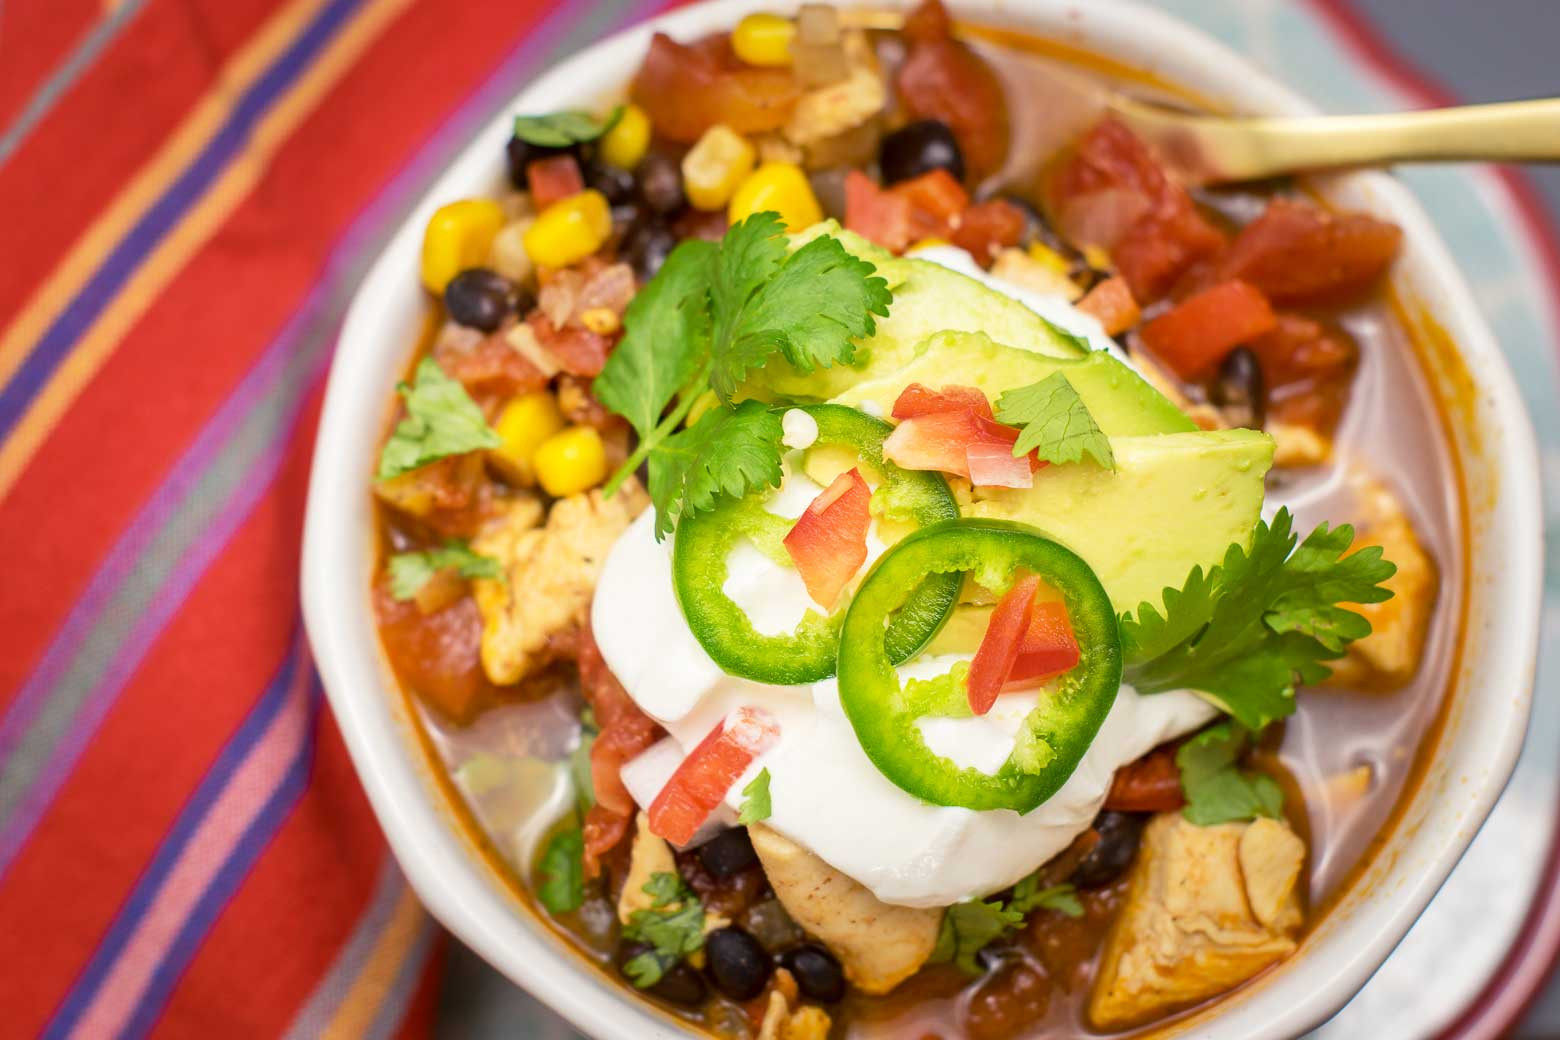 Chicken chili topped with sour cream, fresh cilantro, jalapeños, red peppers, and avocado.